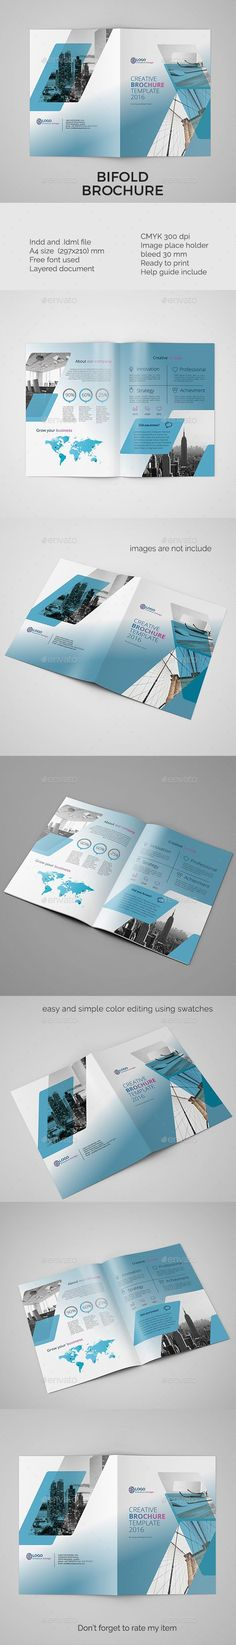 Corporate bifold brochure vol 4 - InDesign Template • Only available here ➝ http://graphicriver.net/item/corporate-bifold-brochure-vol-4/16928284?ref=pxcr Ultimate Graphics Designs is your one stop shop for all your Graphics And Video Solutions!